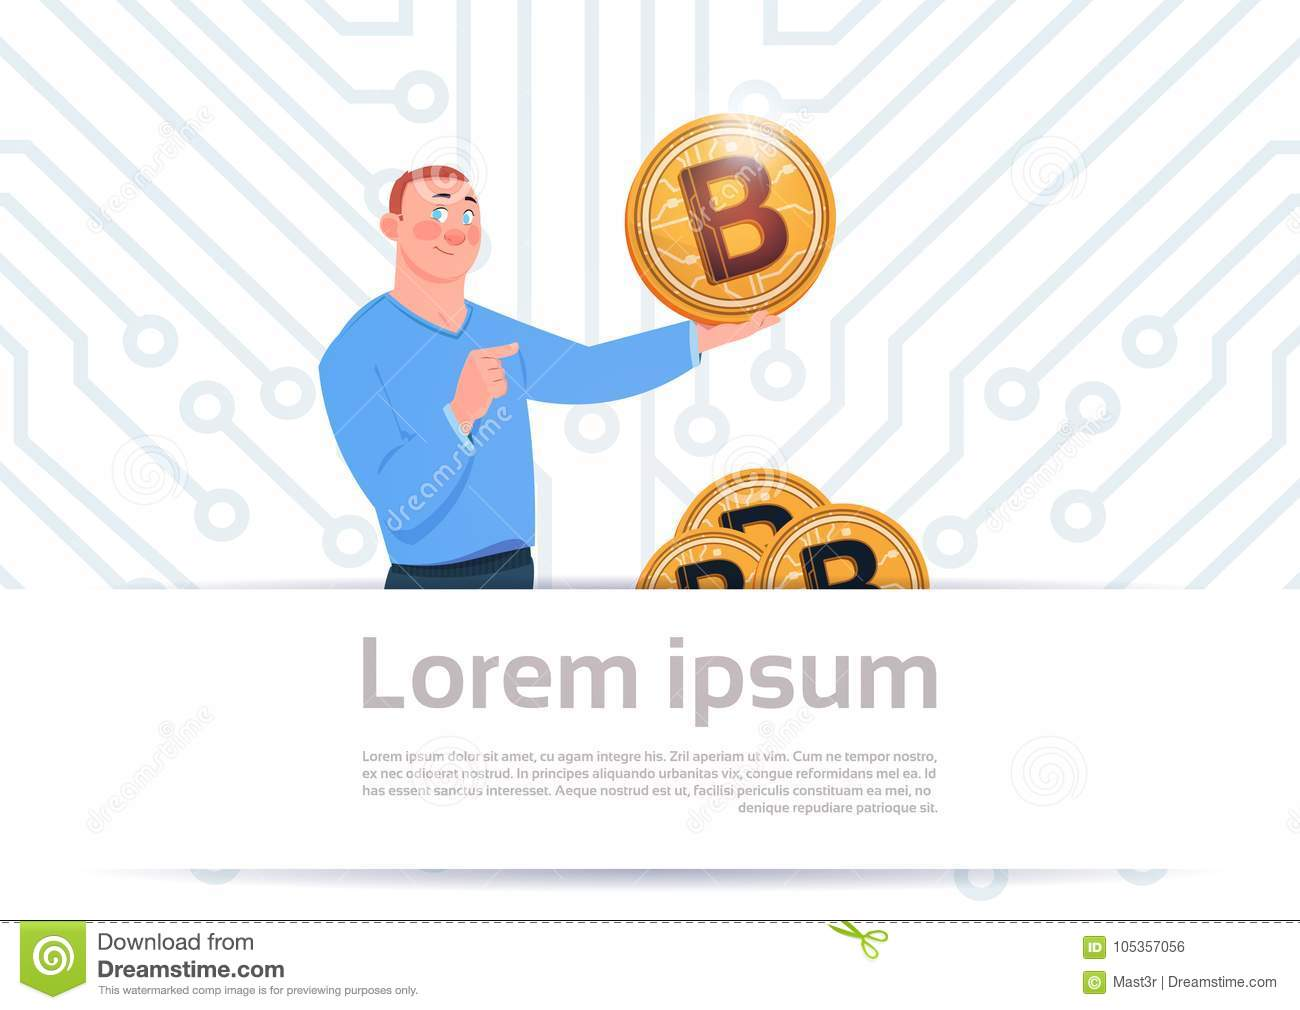 How to hold cryptocurrencies in an ira